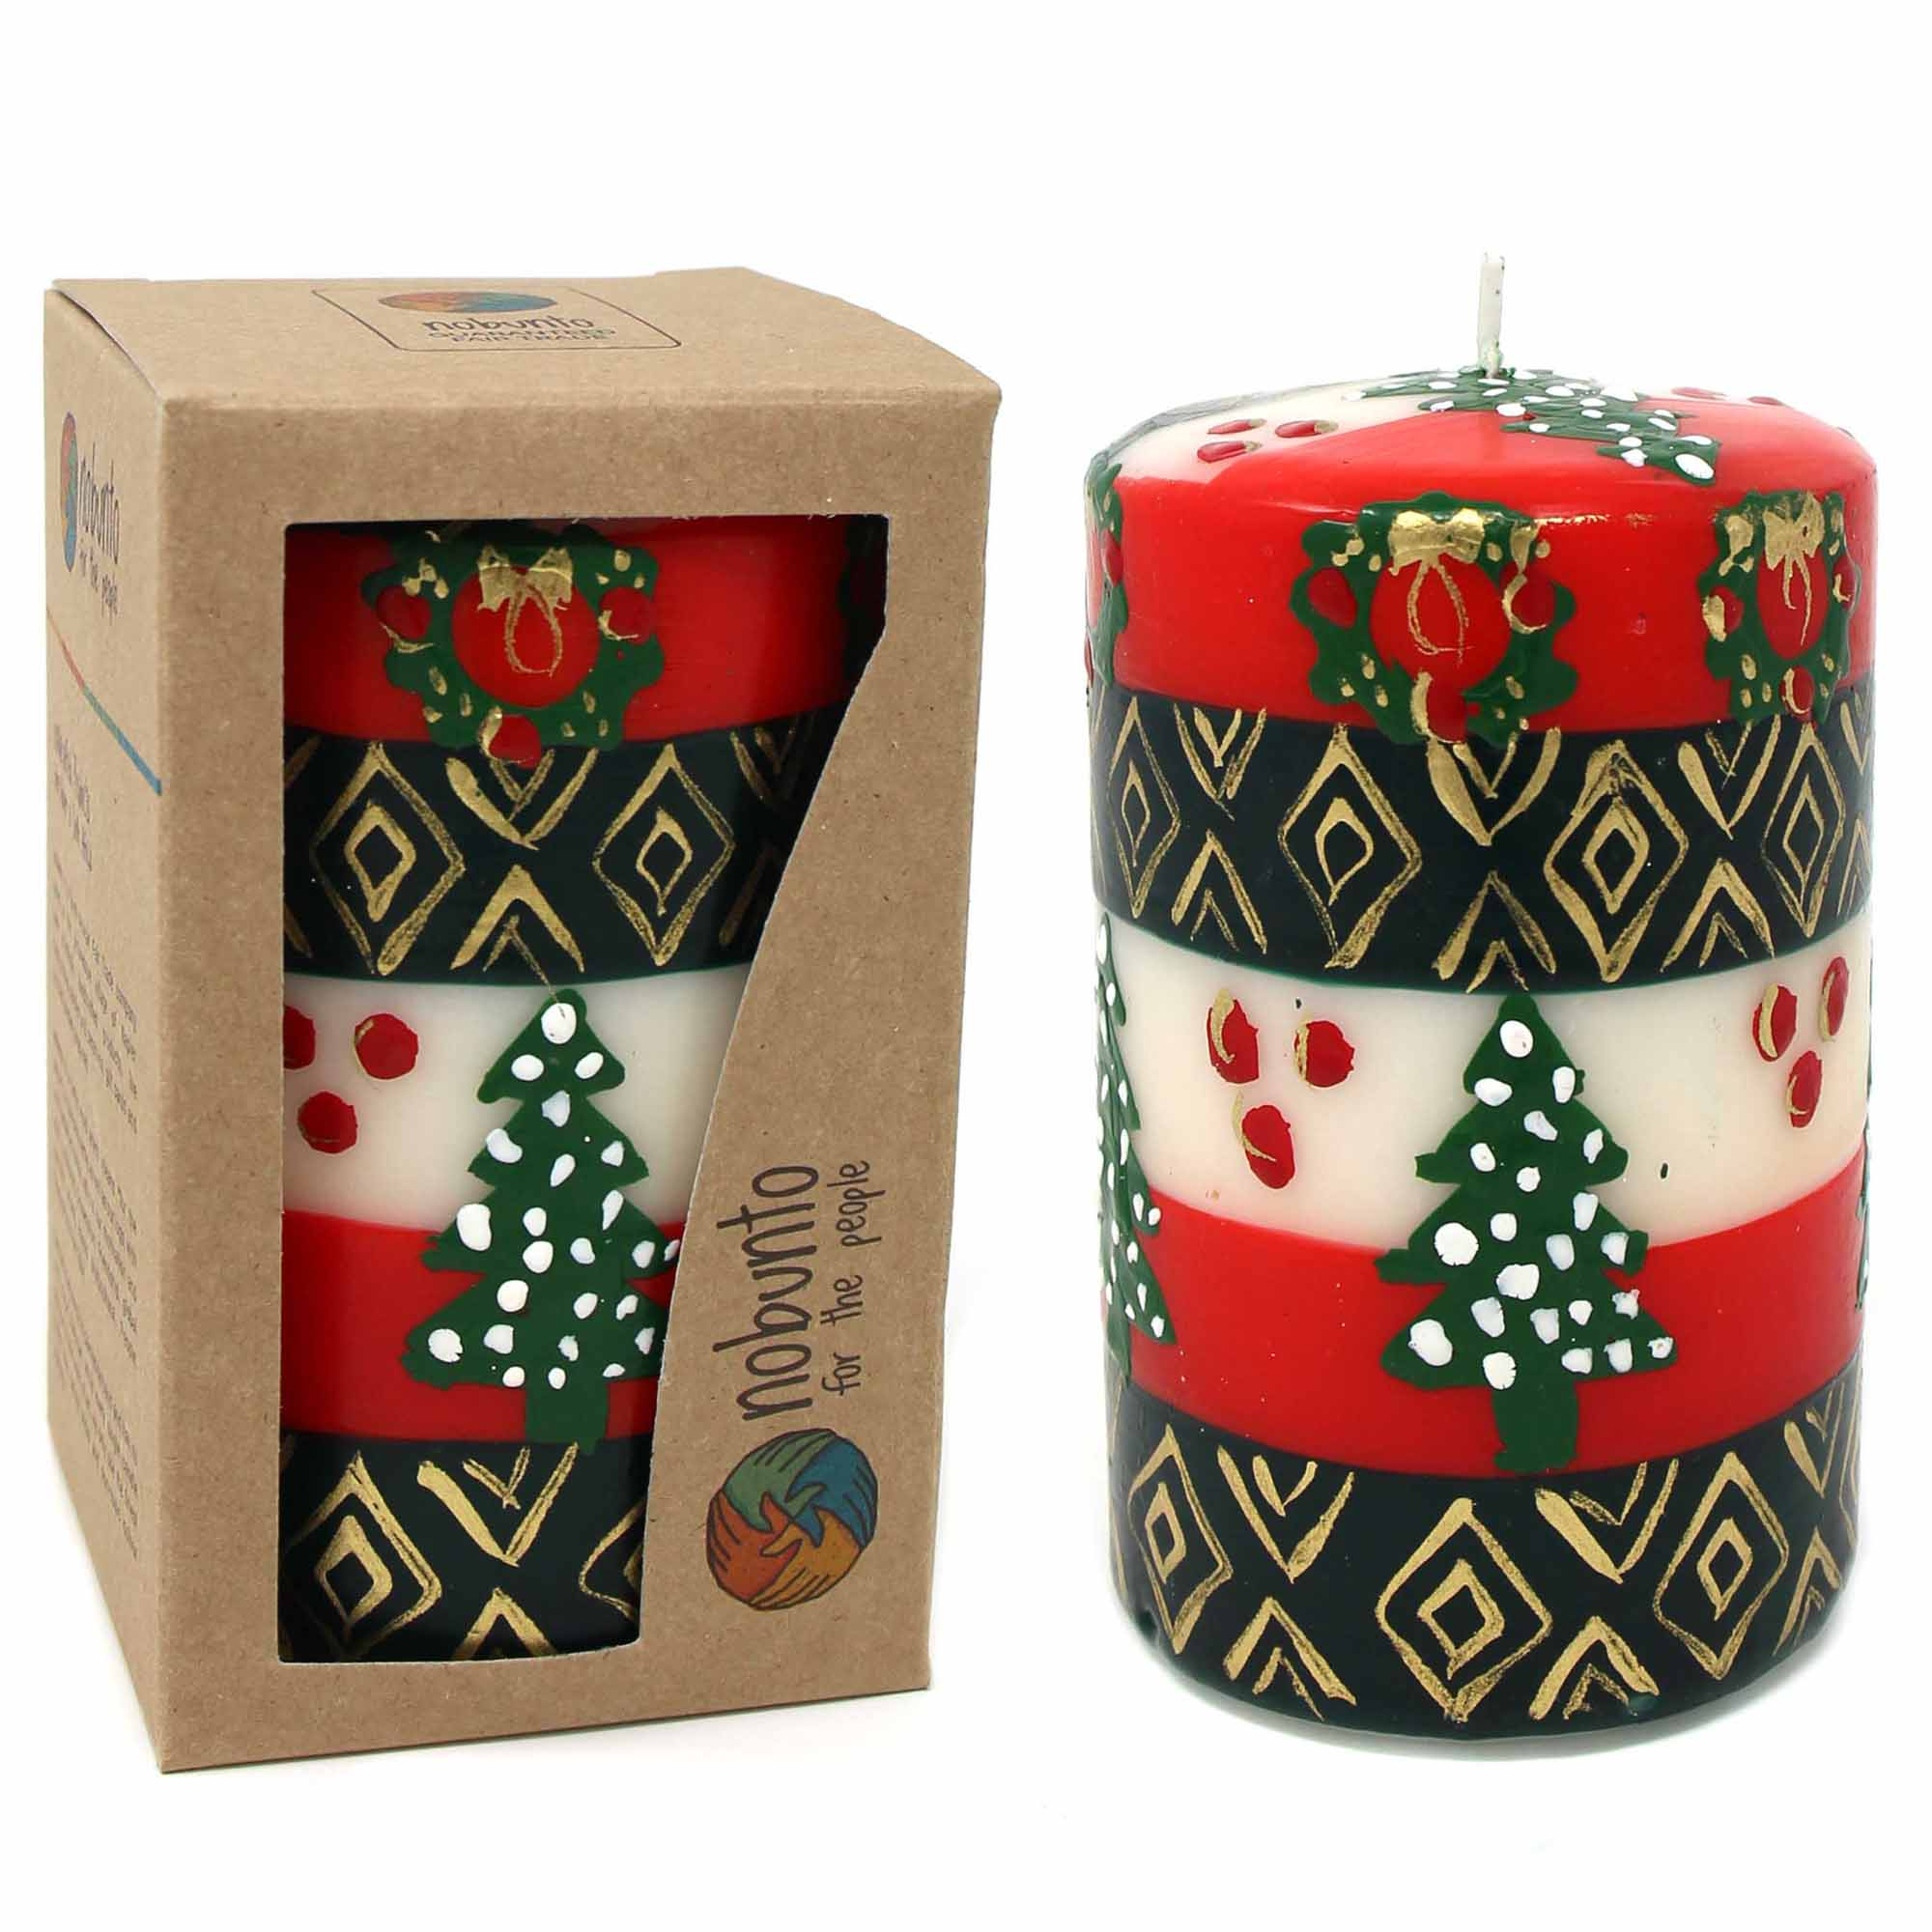 Unscented Christmas Candle, Hand-Painted Pillar in Gift Box, 4-inch (Ukhisimusi Design)